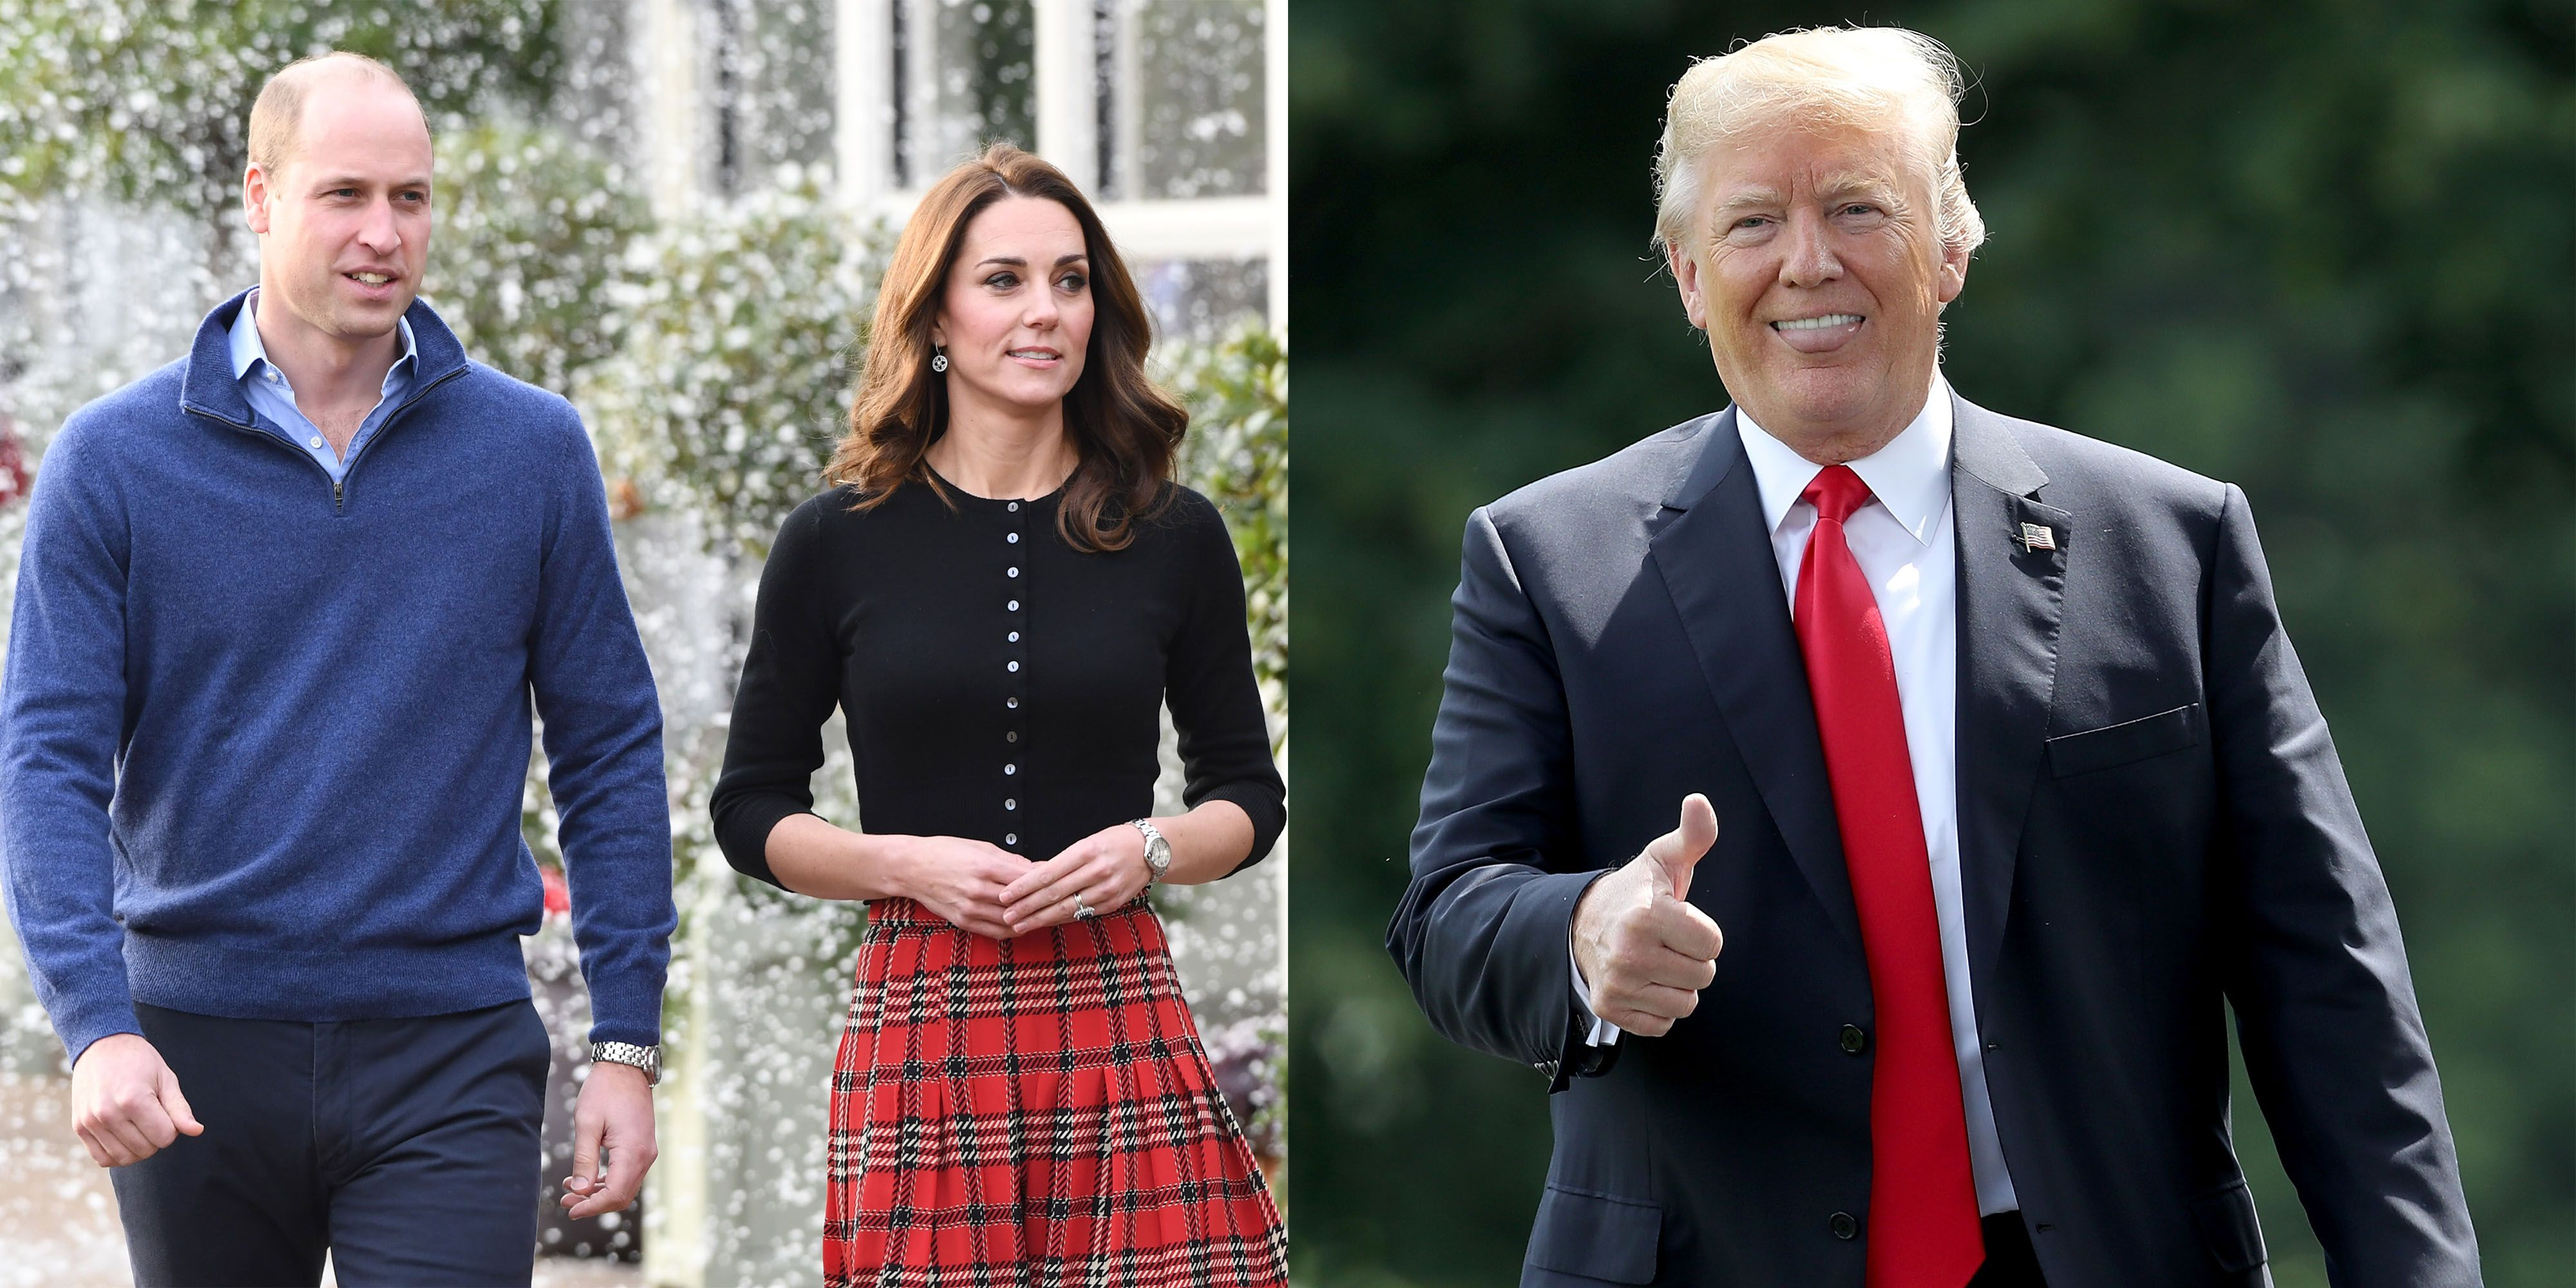 Will Prince William and Kate Middleton Meet Donald Trump?